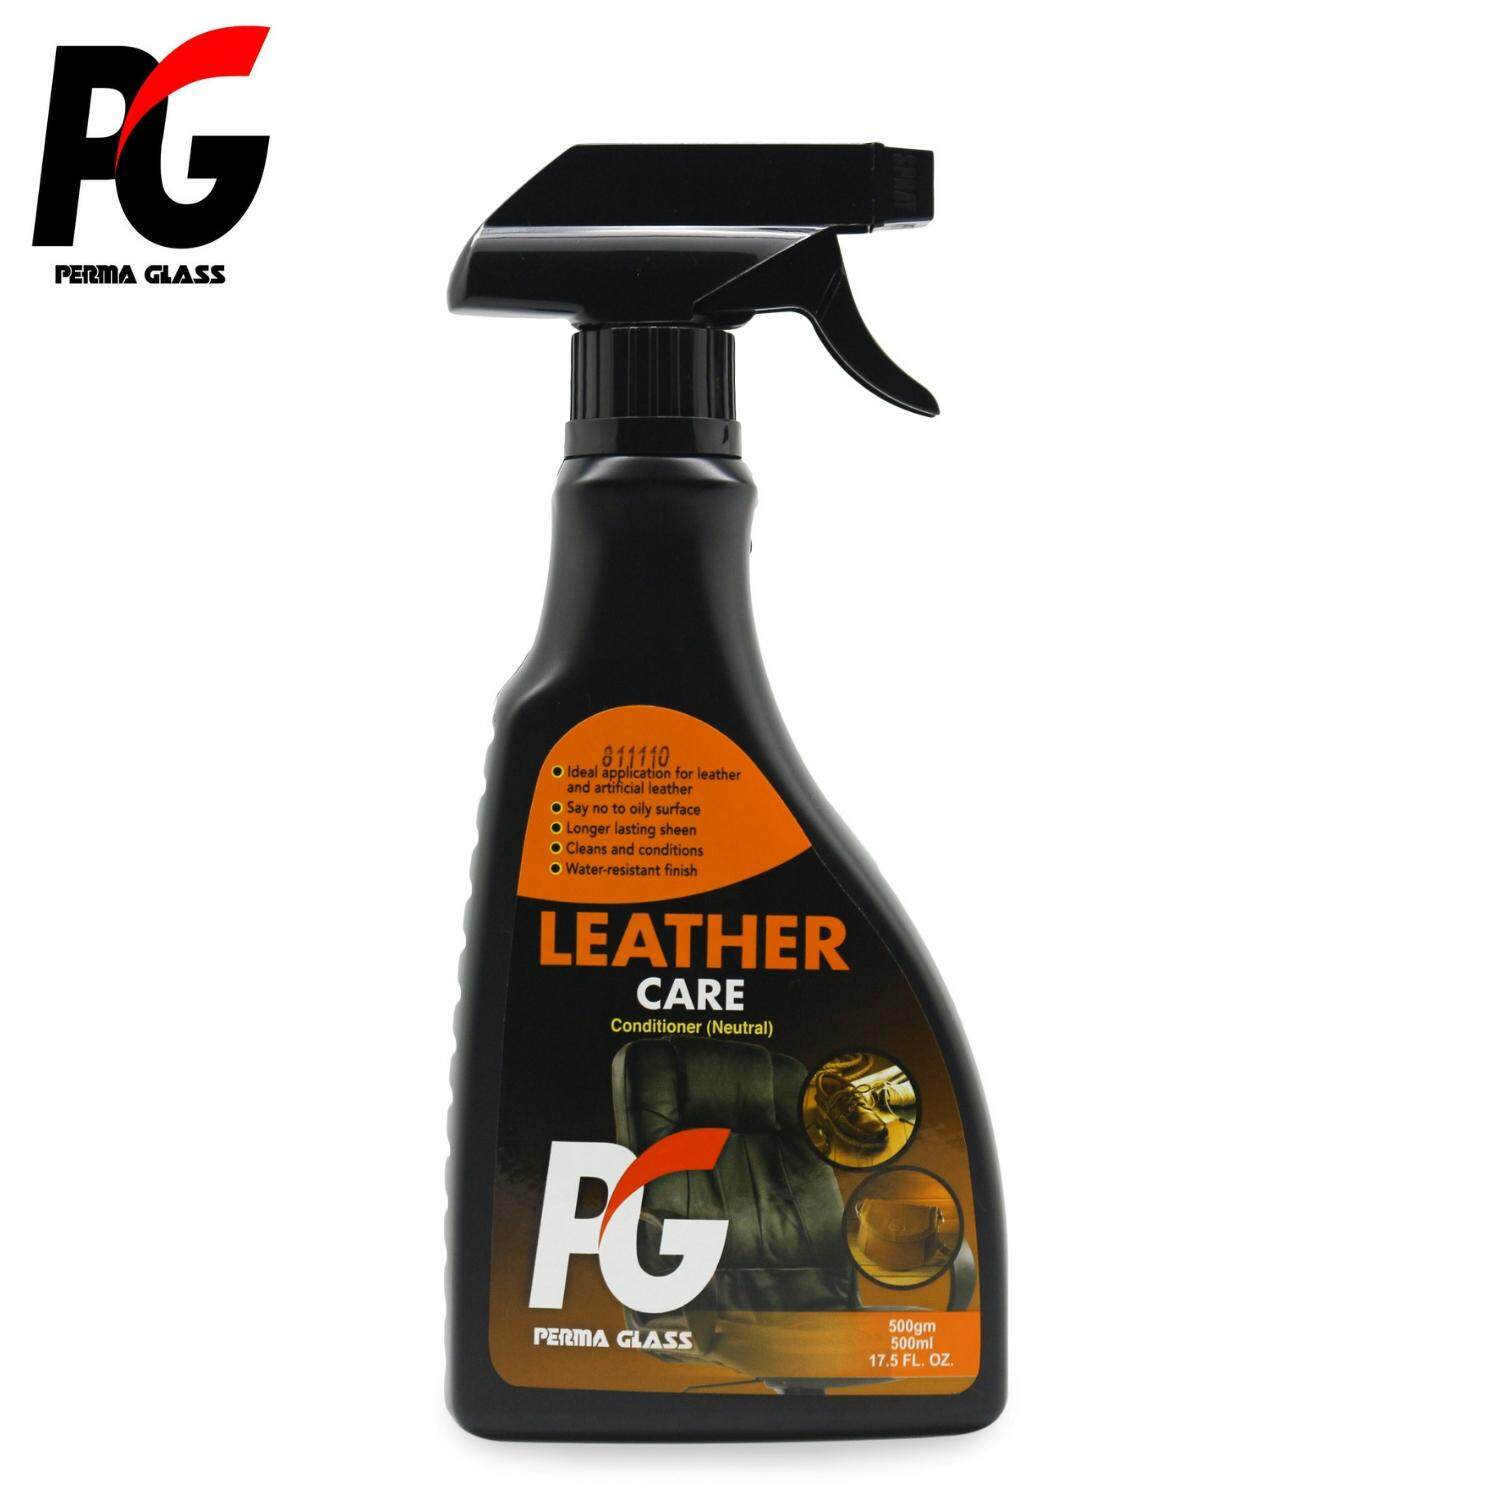 PG LEATHER CARE CONDITIONER - NEUTRAL (500ML) - CAR CARE INTERIOR